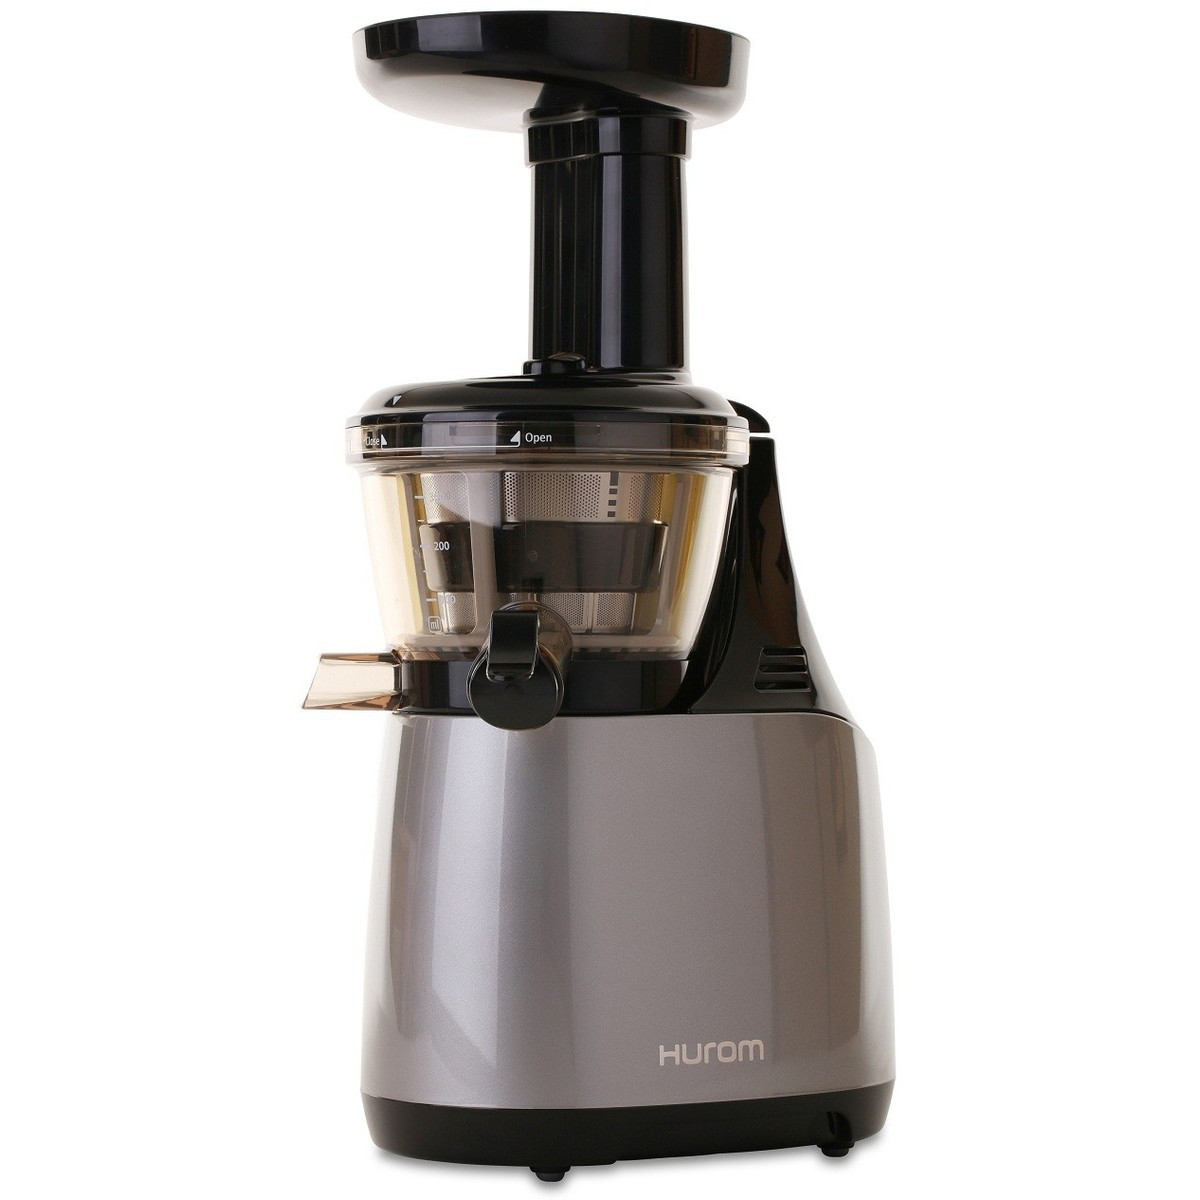 Hurom Slow Juicer Hu 500 : Hurom Slow Juicer HU-500 HE Series - Juicers.ie Ireland s No 1 Juicers website